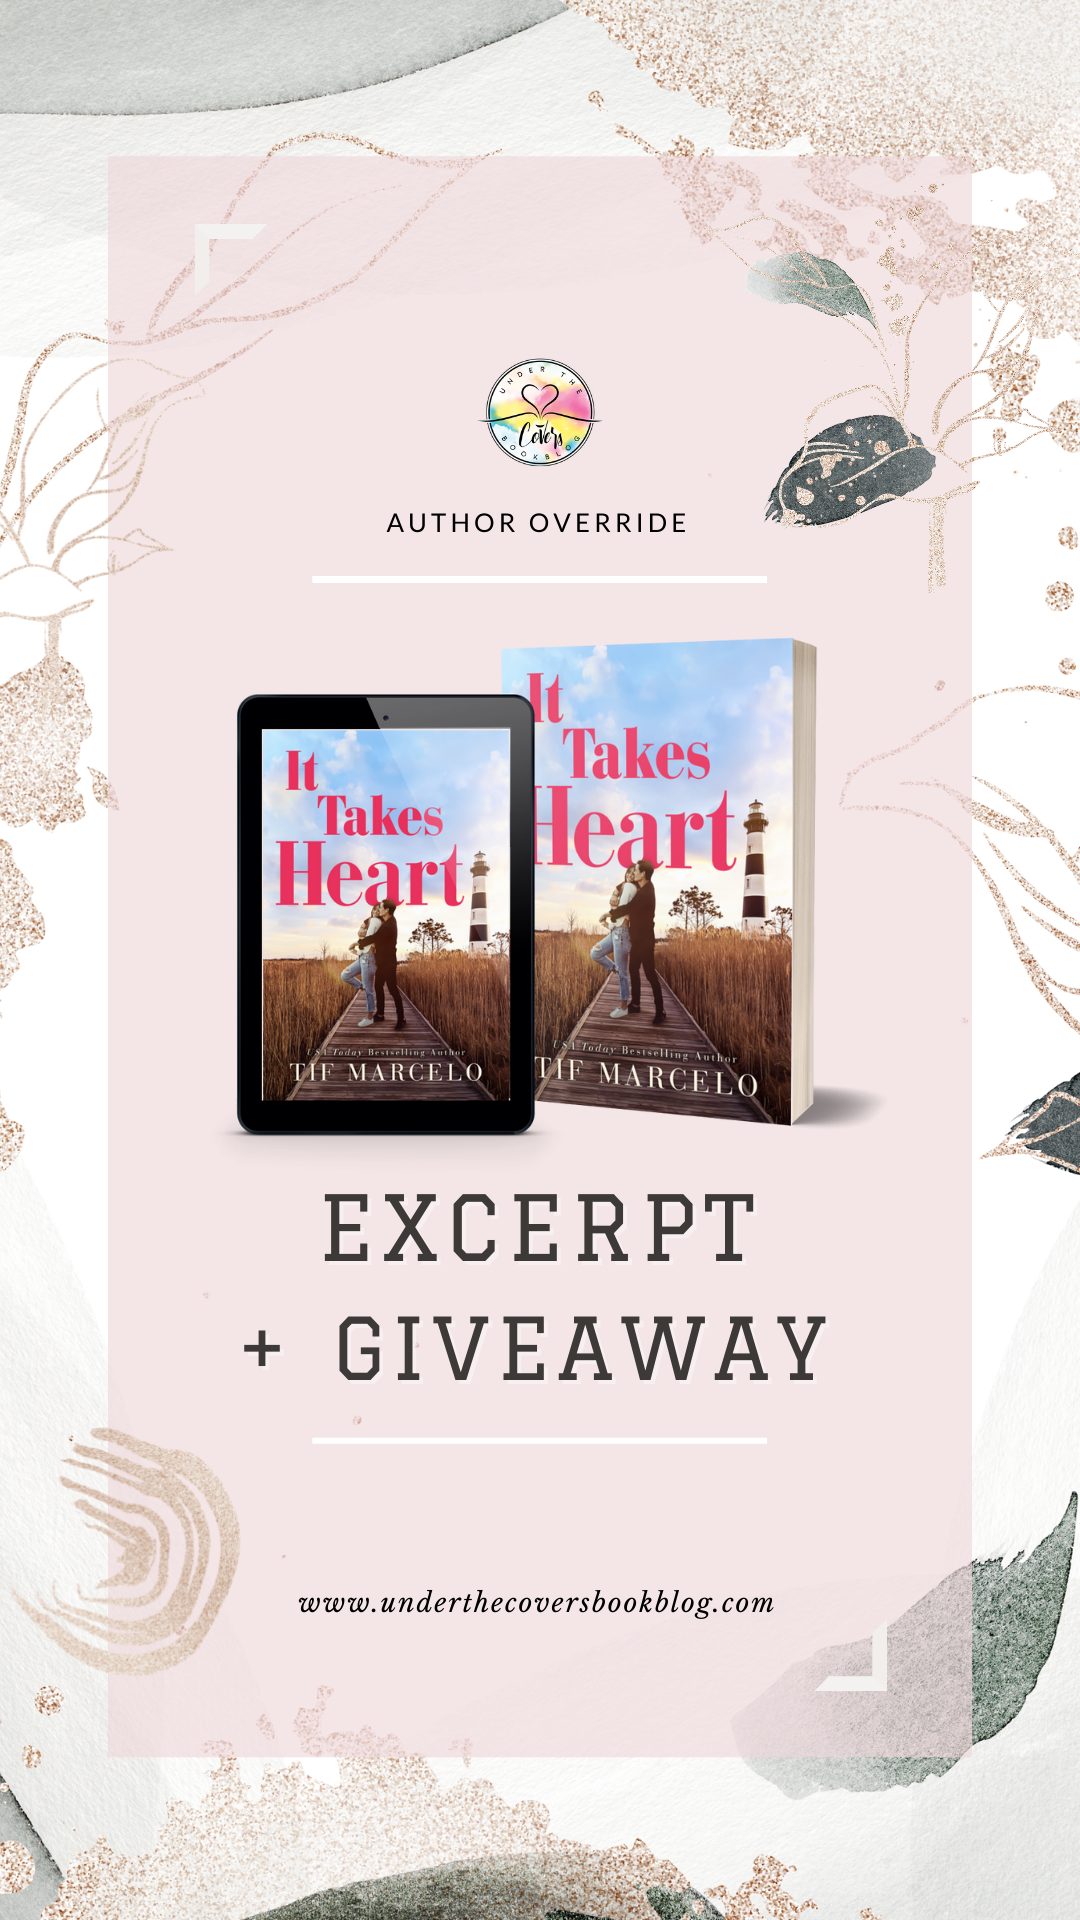 EXCERPT from IT TAKES HEART by Tif Marcelo + Giveaway